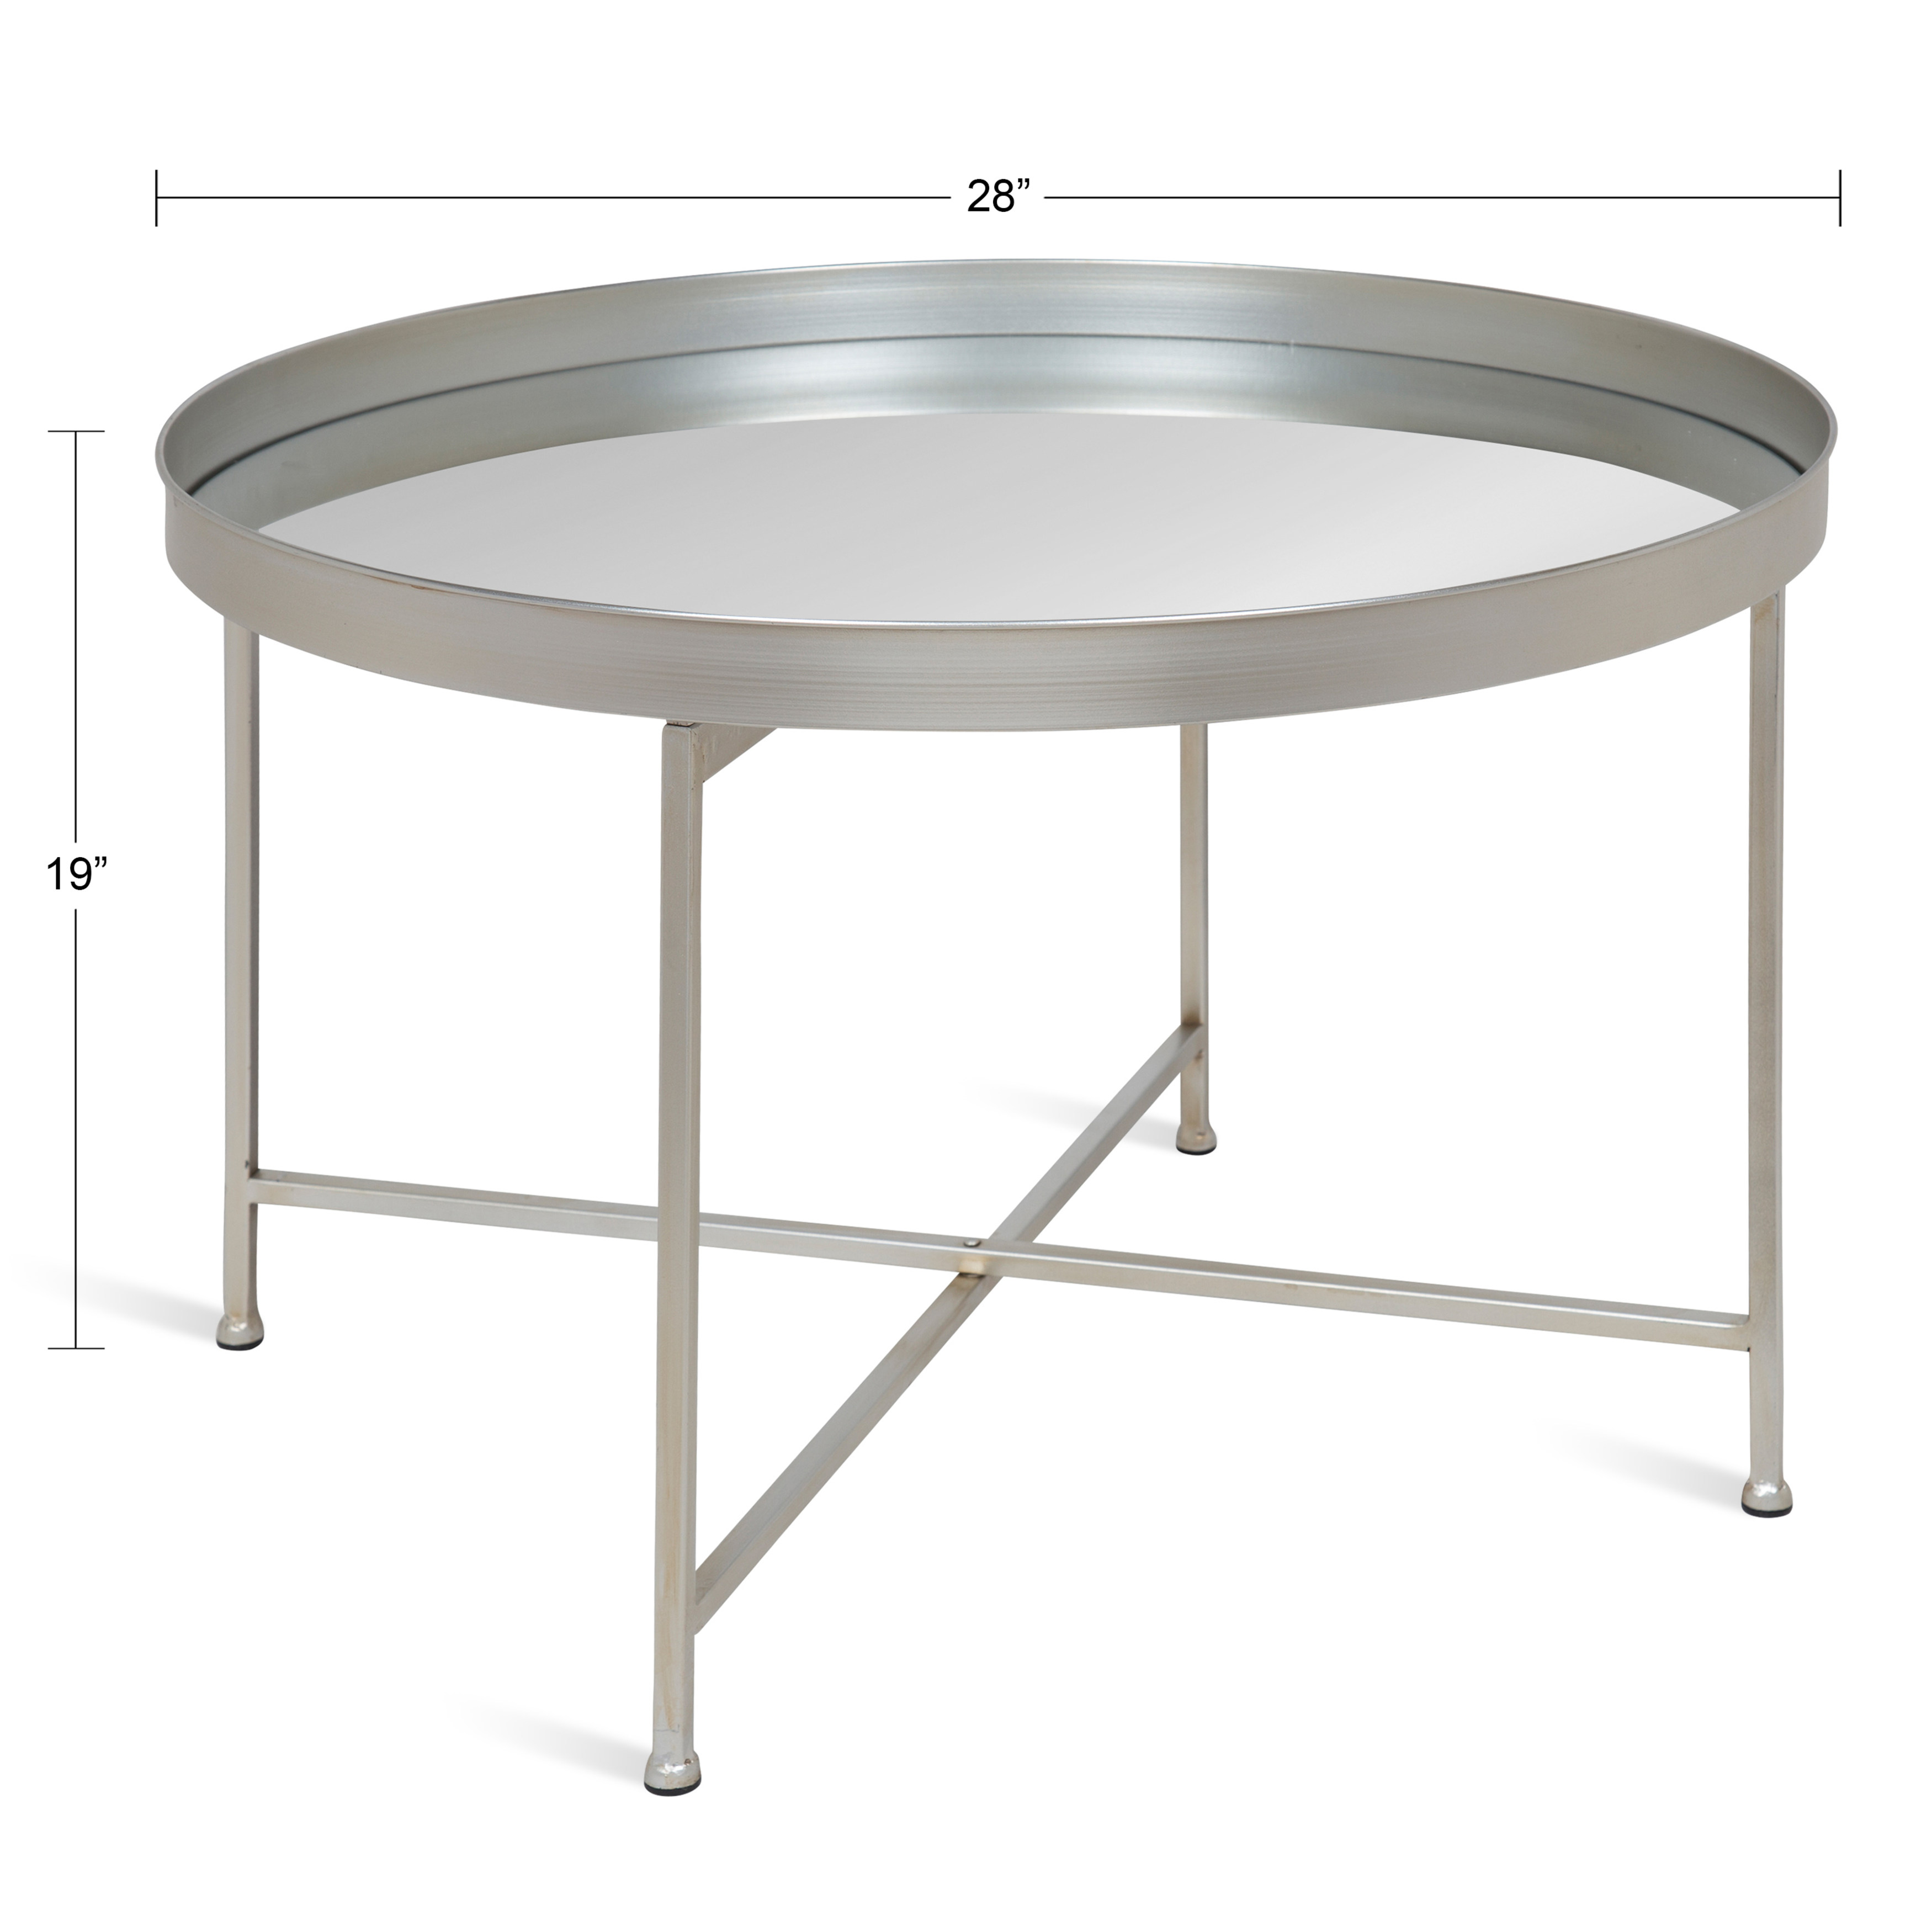 Kate And Laurel Celia Round Metal Foldable Coffee Table With Mirrored Tray Top Silver Walmart Com Walmart Com